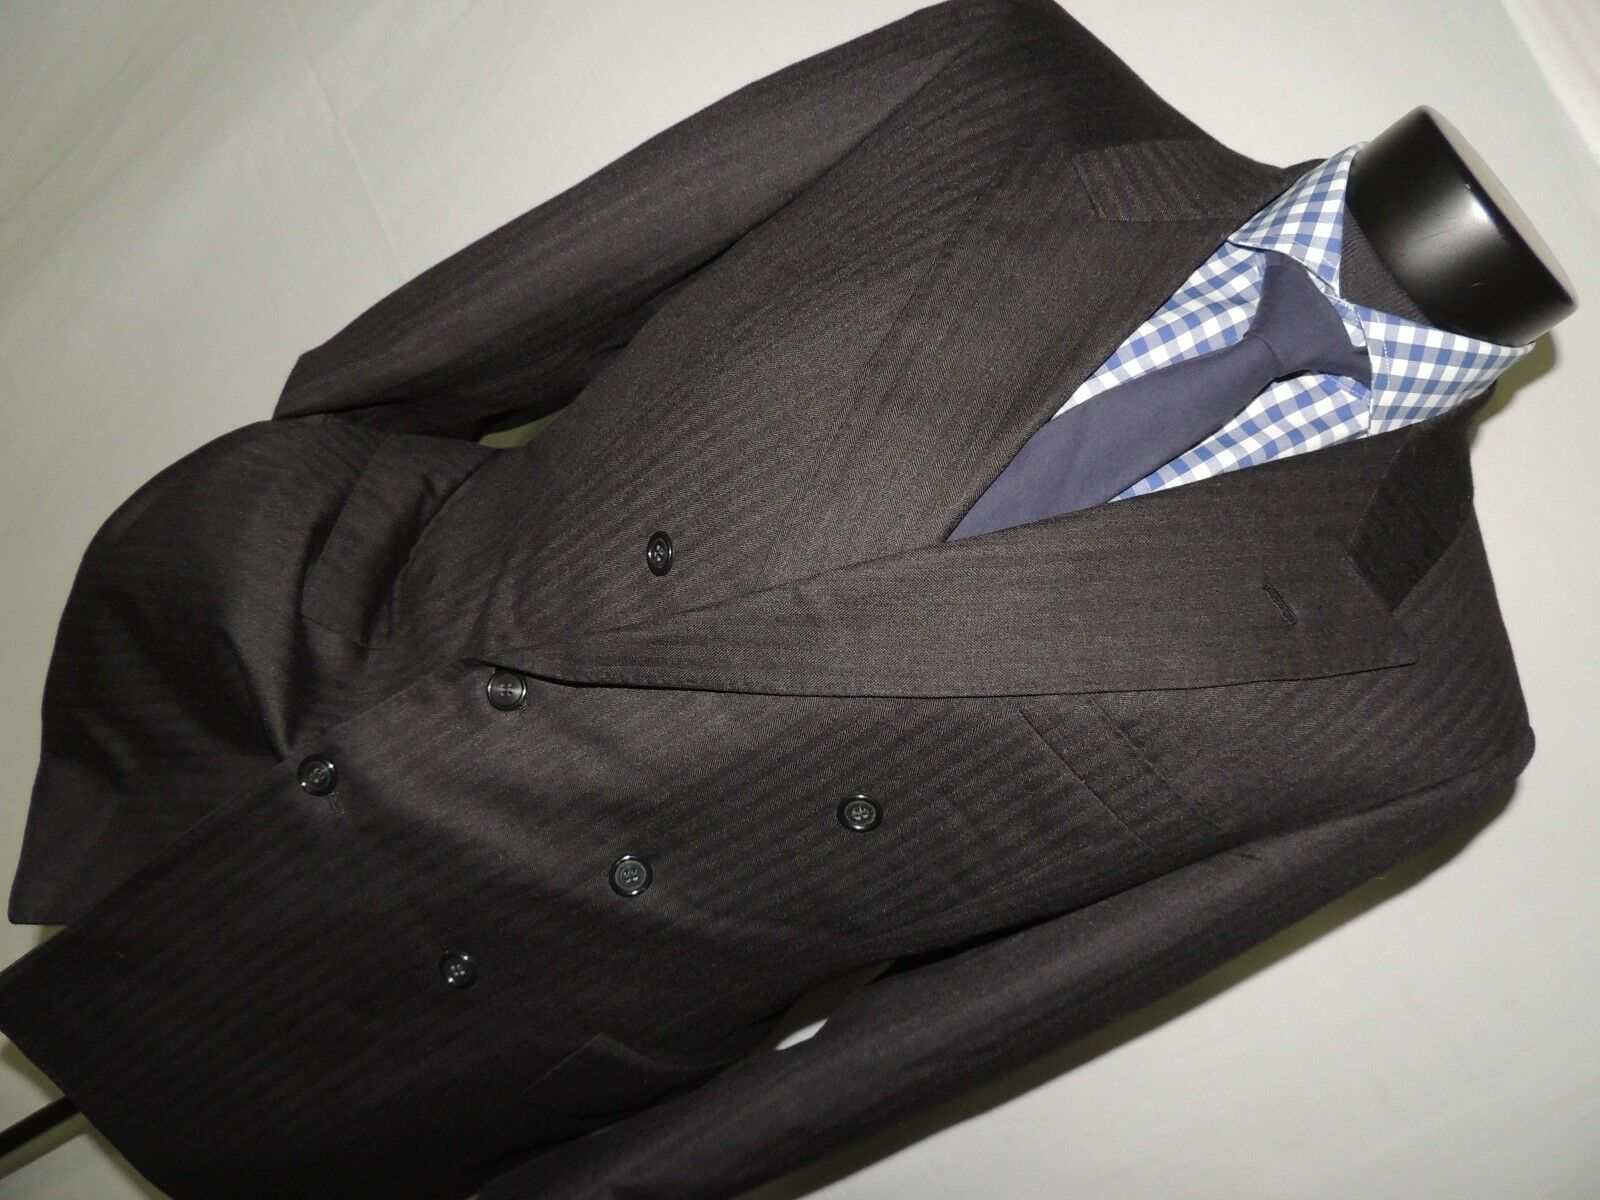 Bespoke By Bill Cairo vintage grau Double Breasted suit coat 38 R pants 32X30